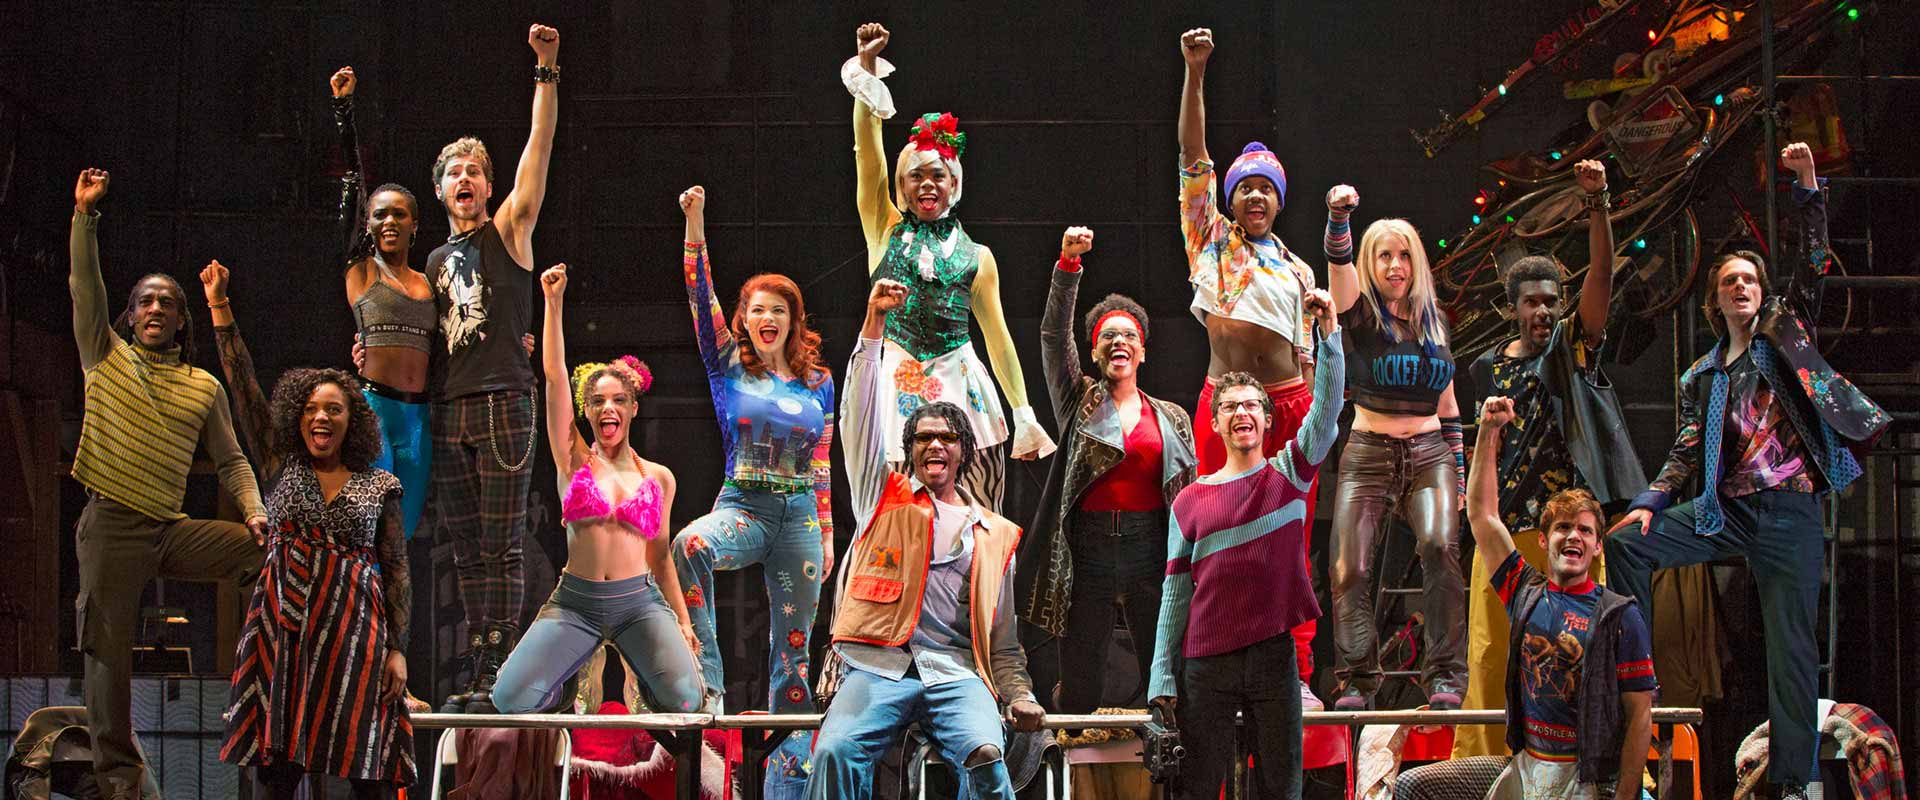 RENT 20th Anniversary Tour - Aug 24, 25, 2019 at Centennial Concert Hall